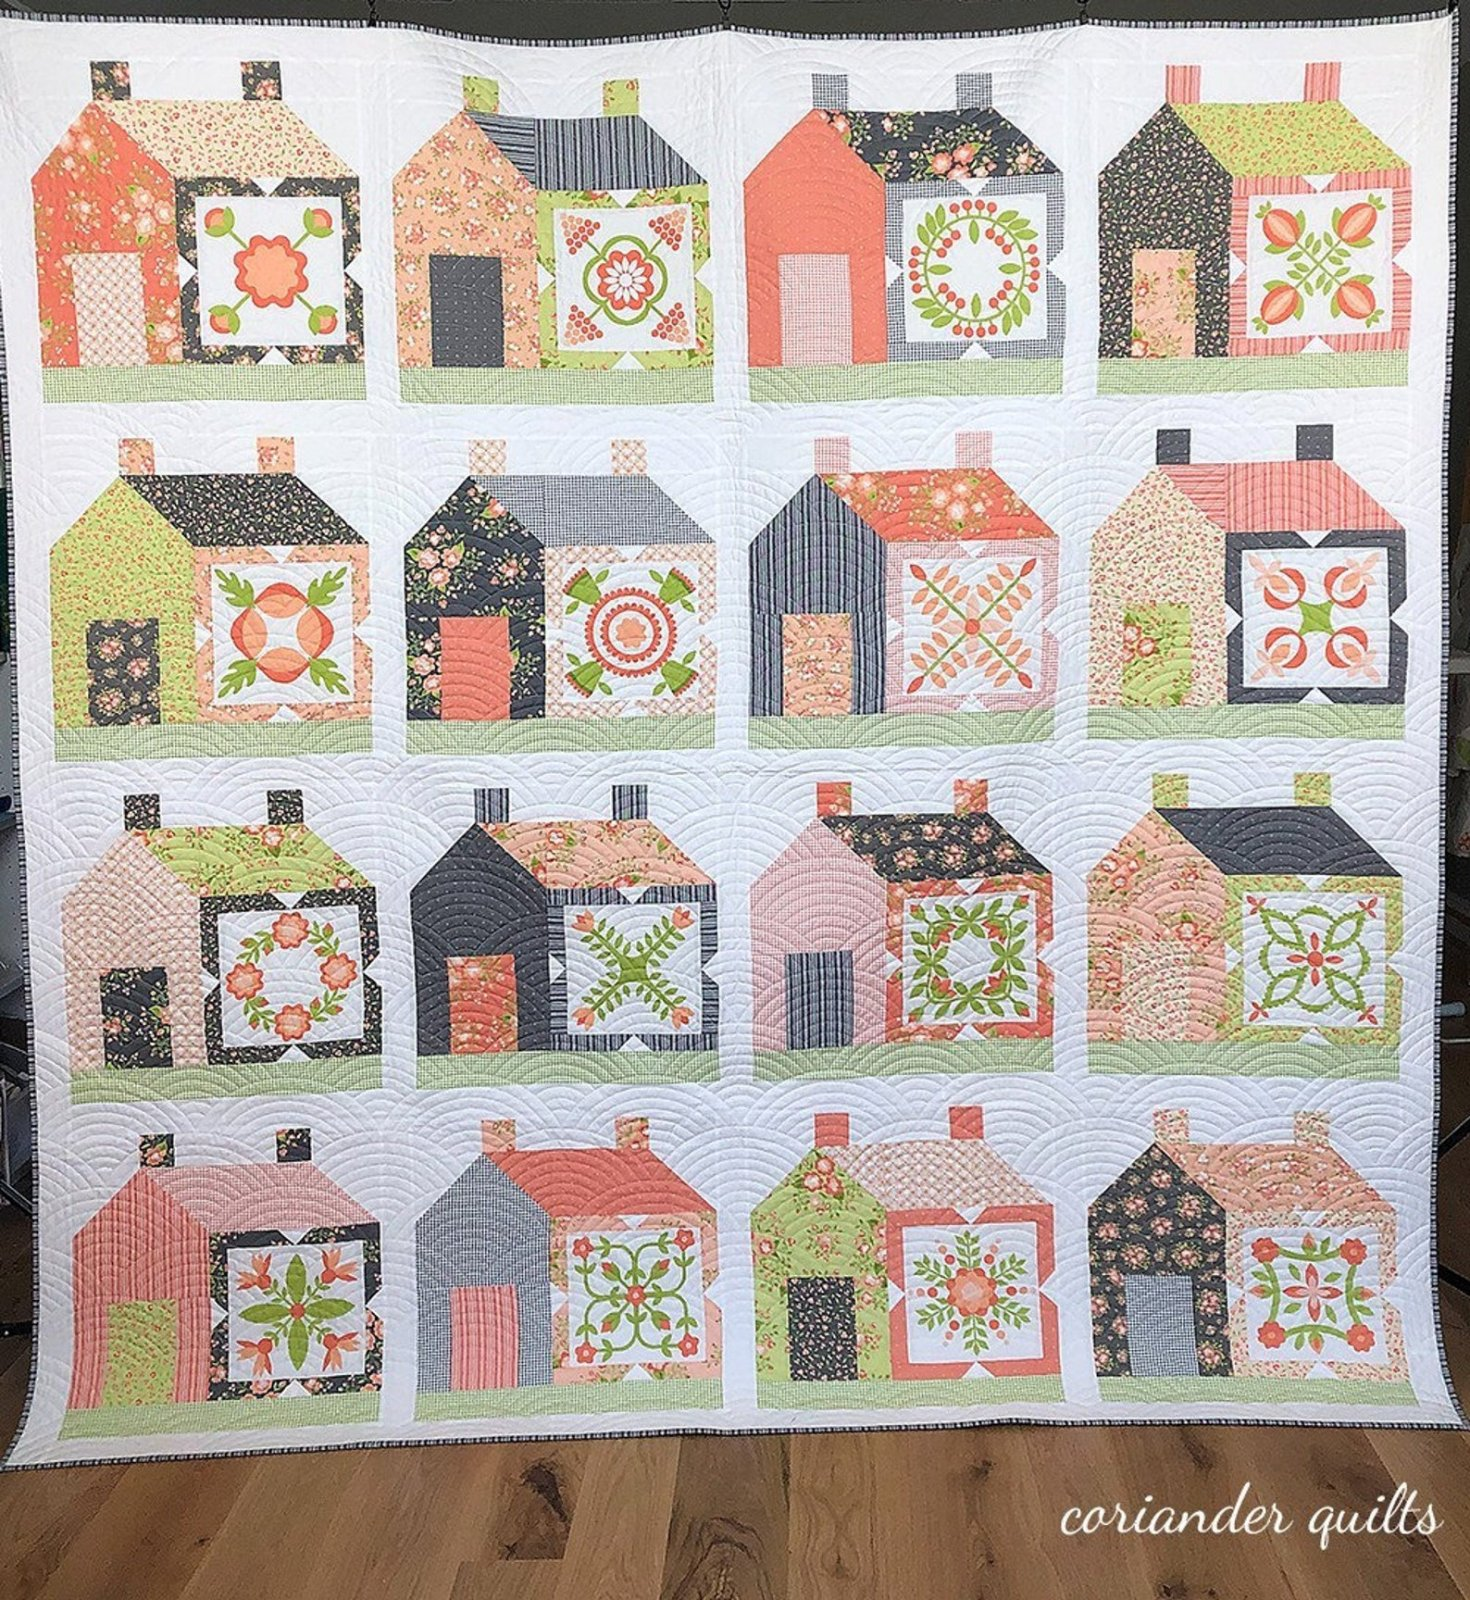 Friendly Neighbor Quilt Kit using Apricot & Ash fabrics from Corey Yoder